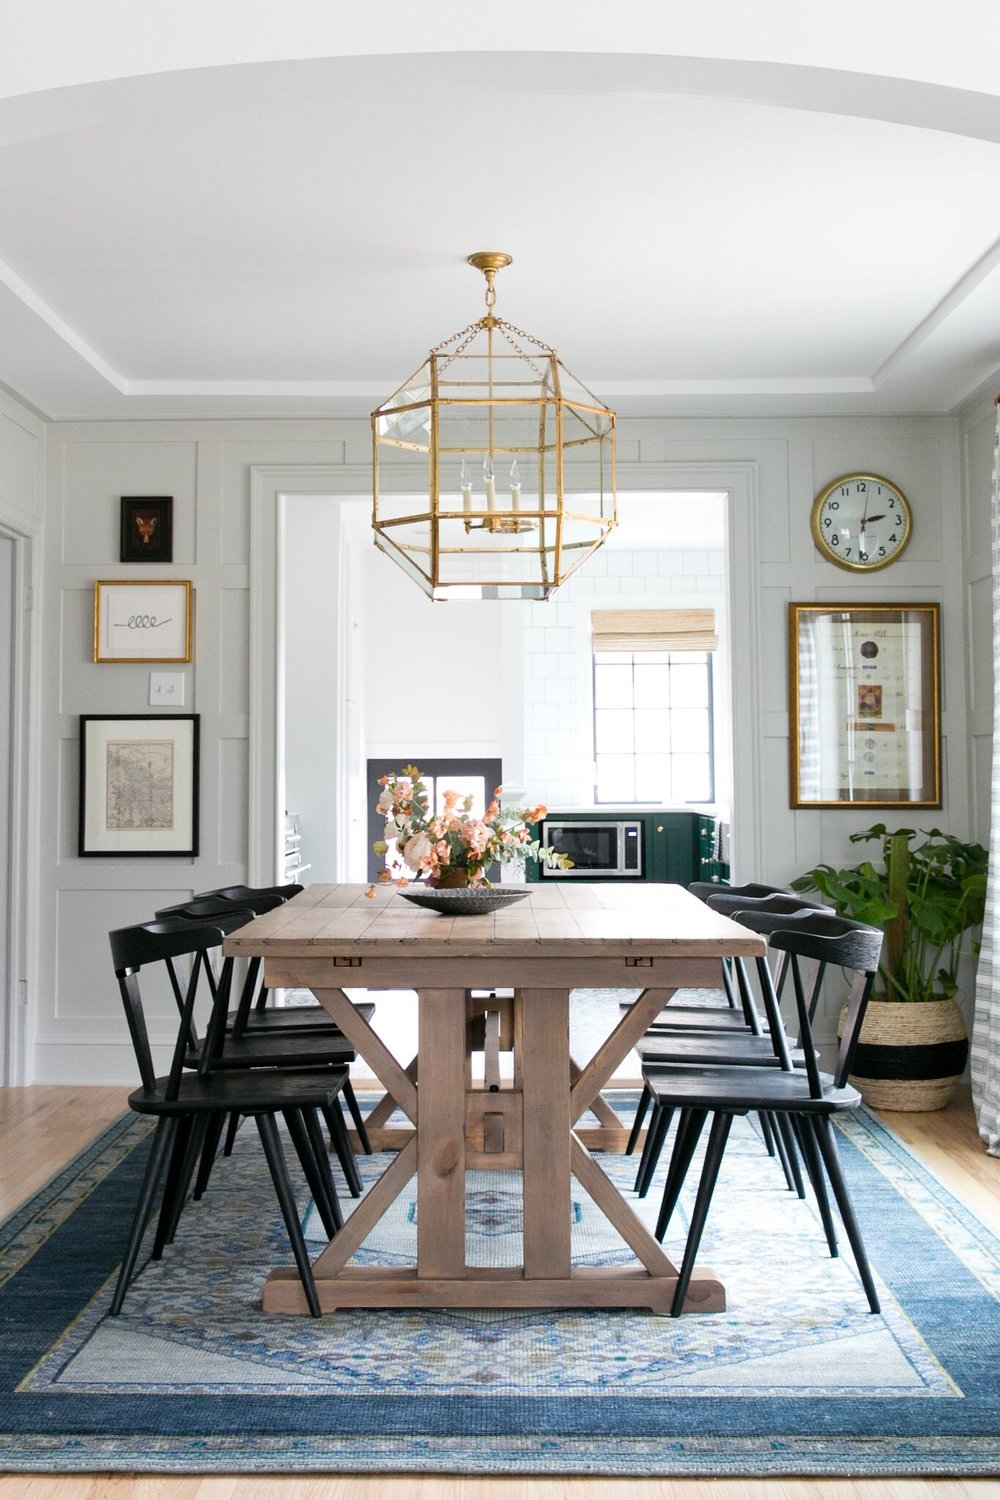 Eclectic dining room with wood dining table, and vintage rug and artwork.